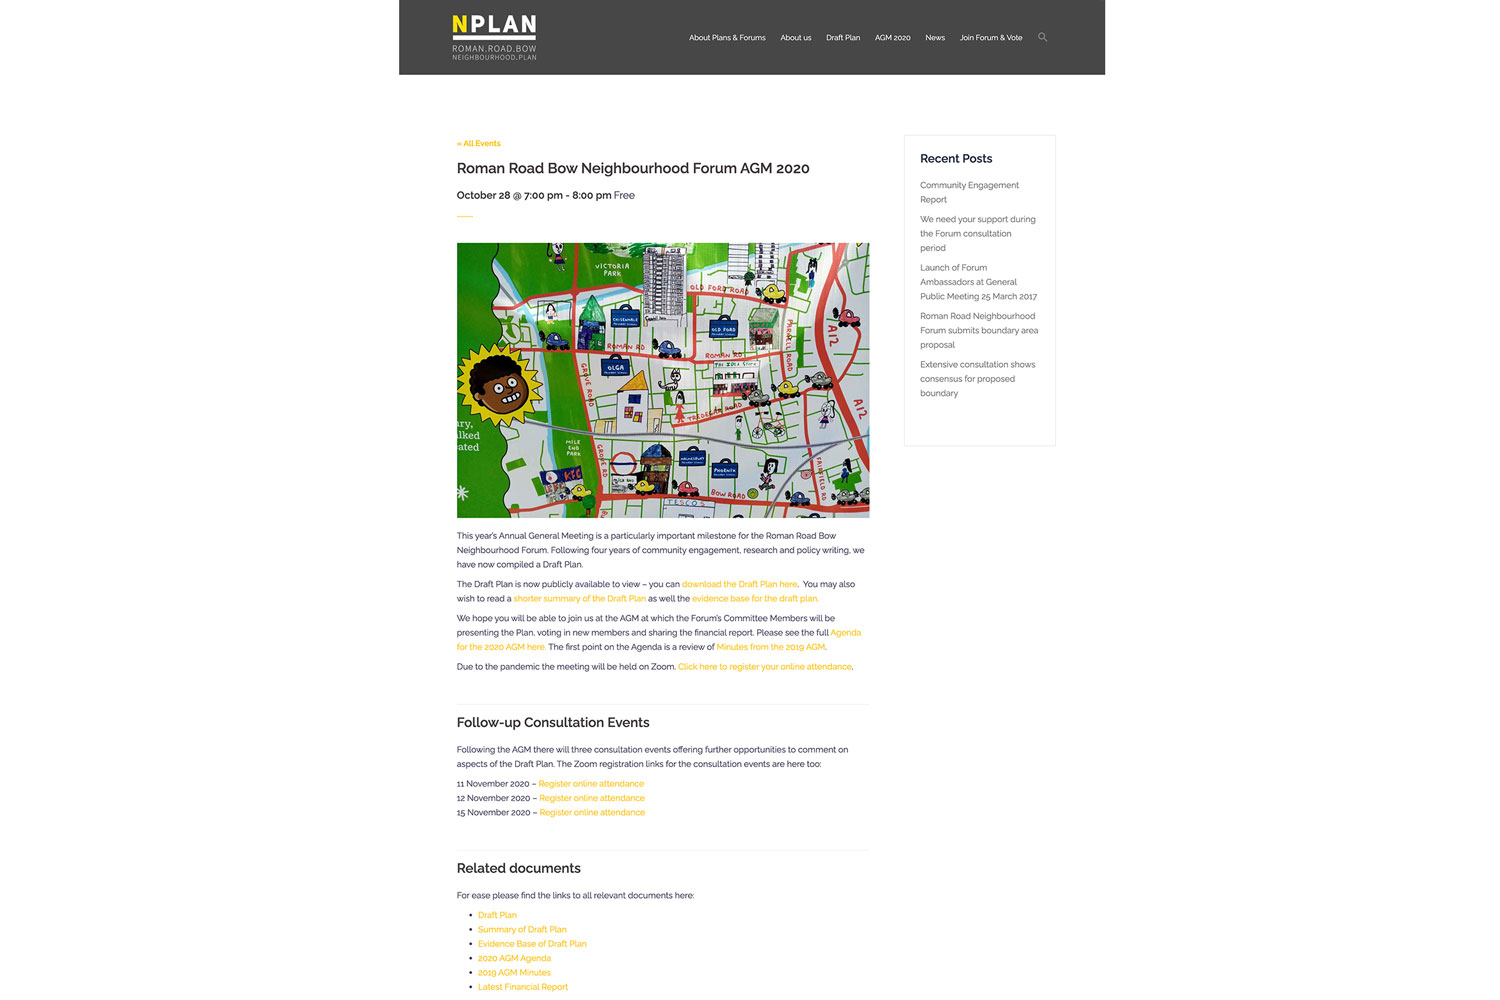 Neighbourhood Plan website event page